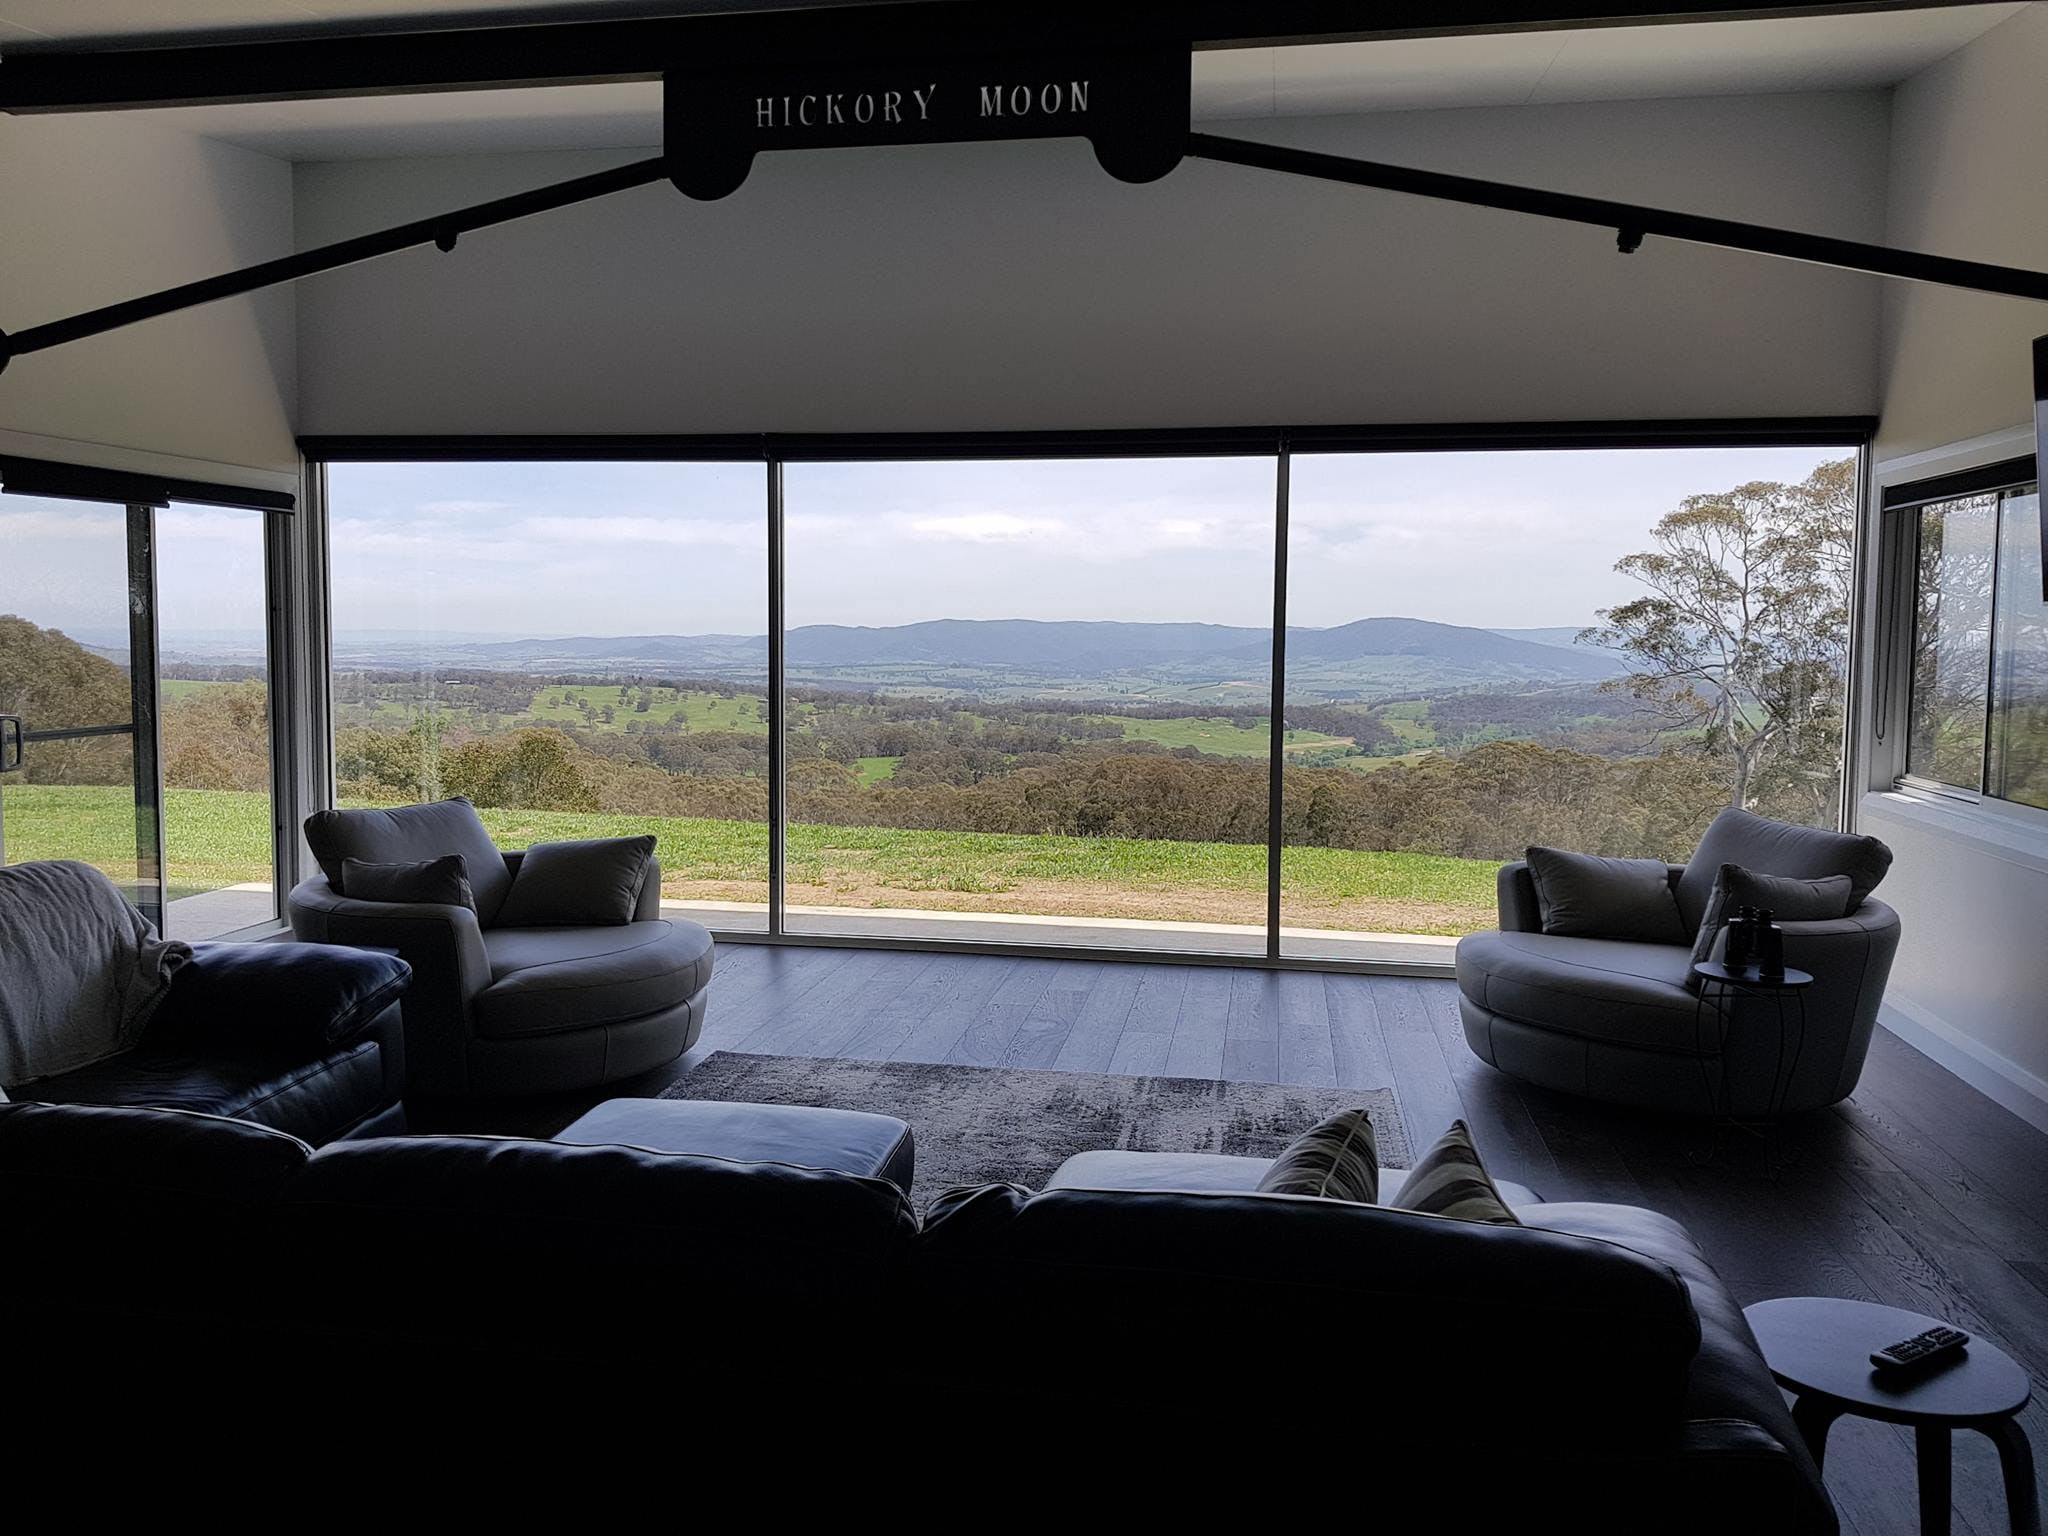 Luxurious leather lounge and snuggle chairs. Spectacular views.